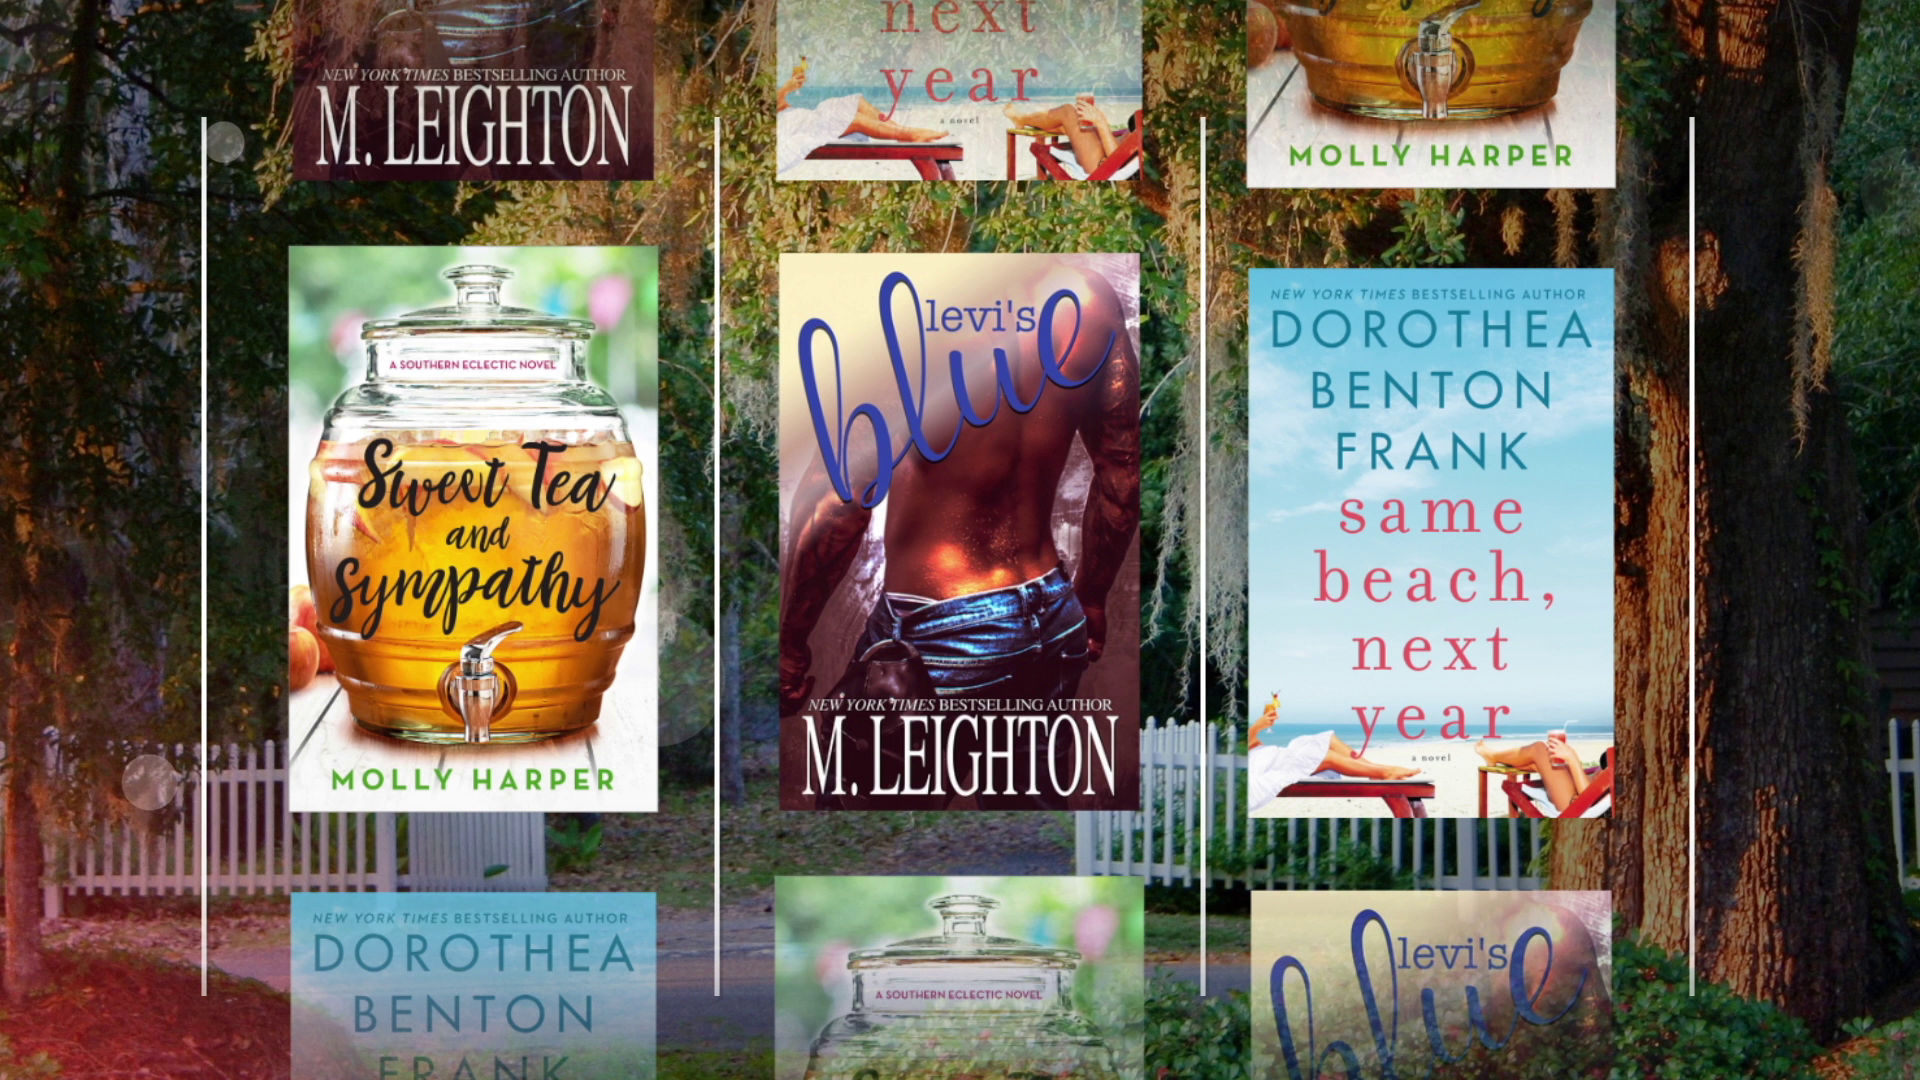 Miss Southern Charm Already? Try a Sexy Southern Romance...